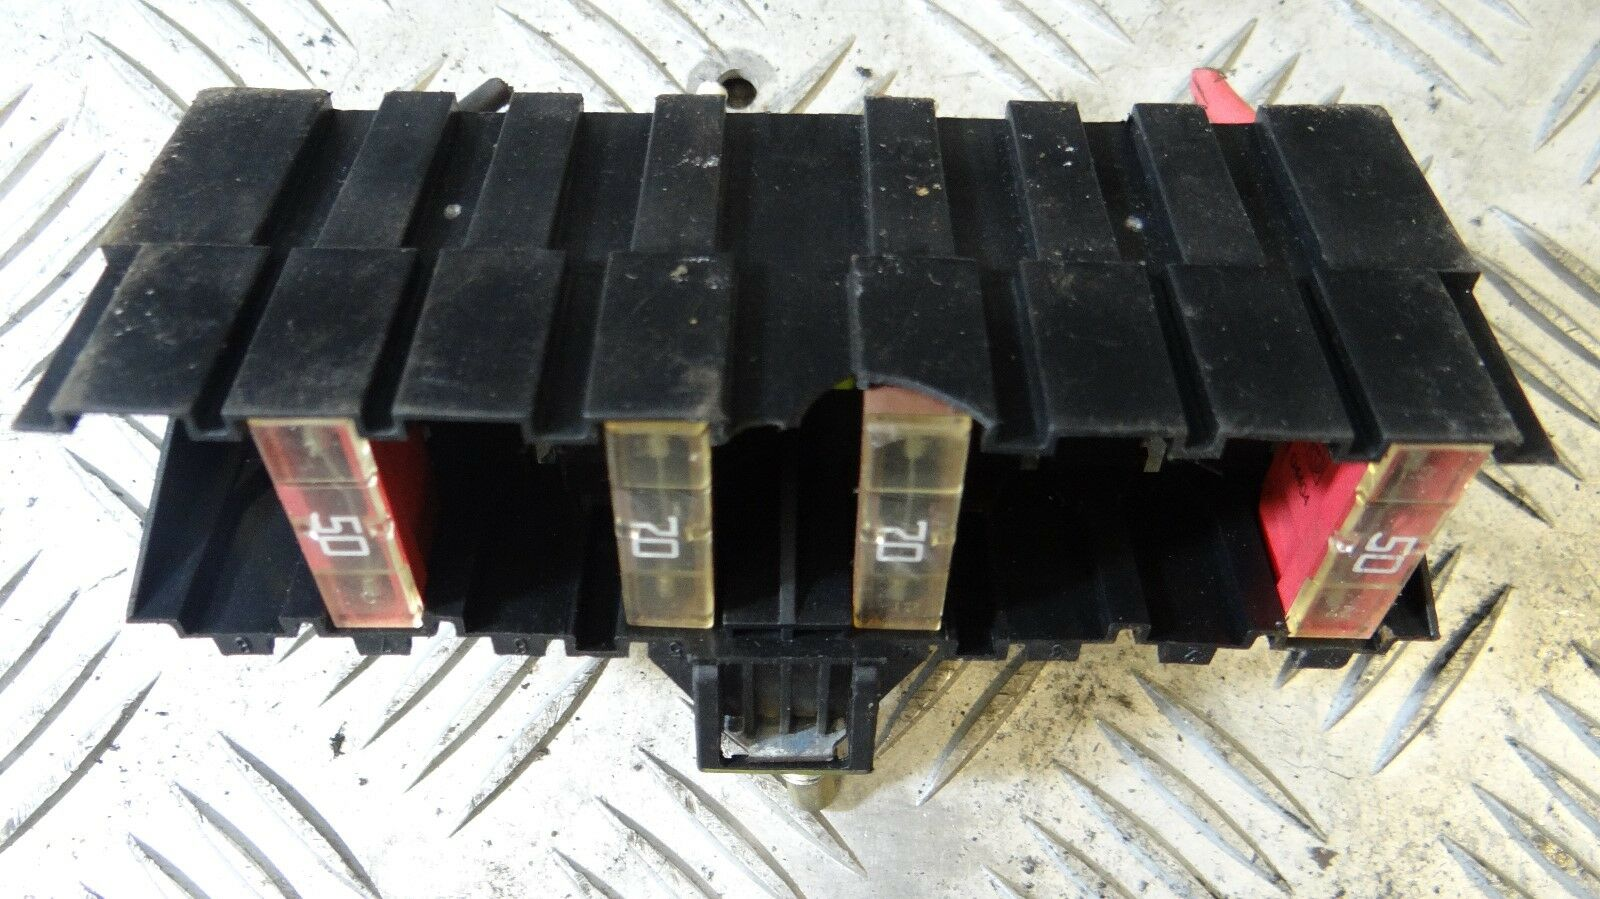 C4 Fuse Box Citroen Berlingo C2 C3 C8 Engine Bay 9636079380 2499 1 Of 5only Available See More